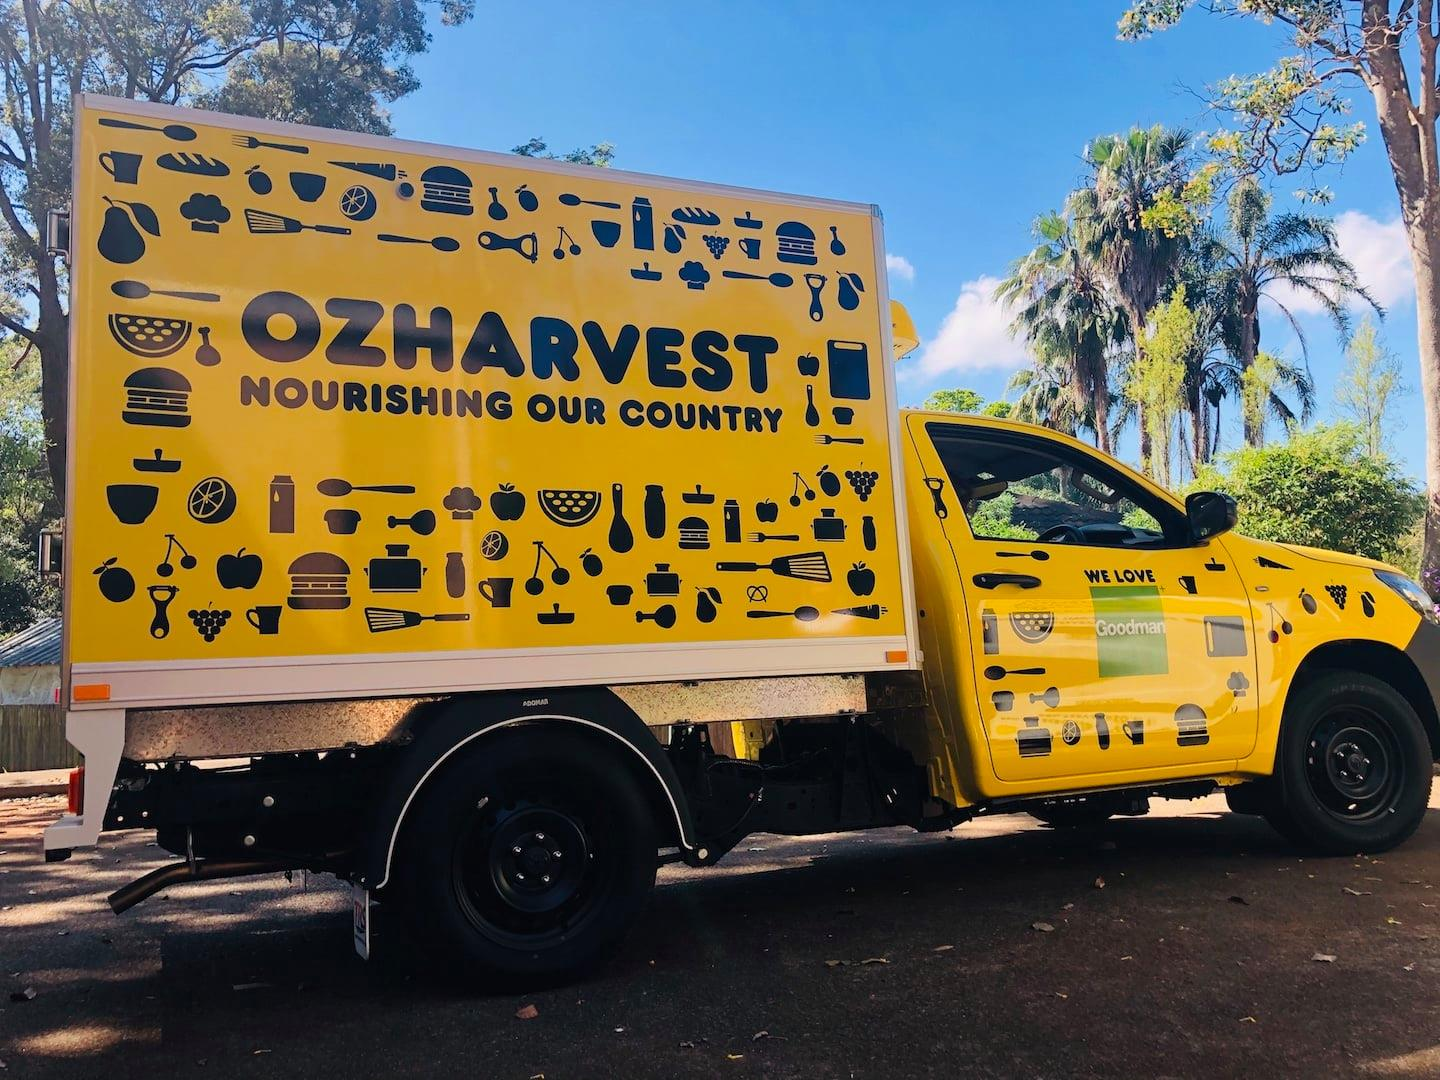 OzHarvest Port Macquarie food truck